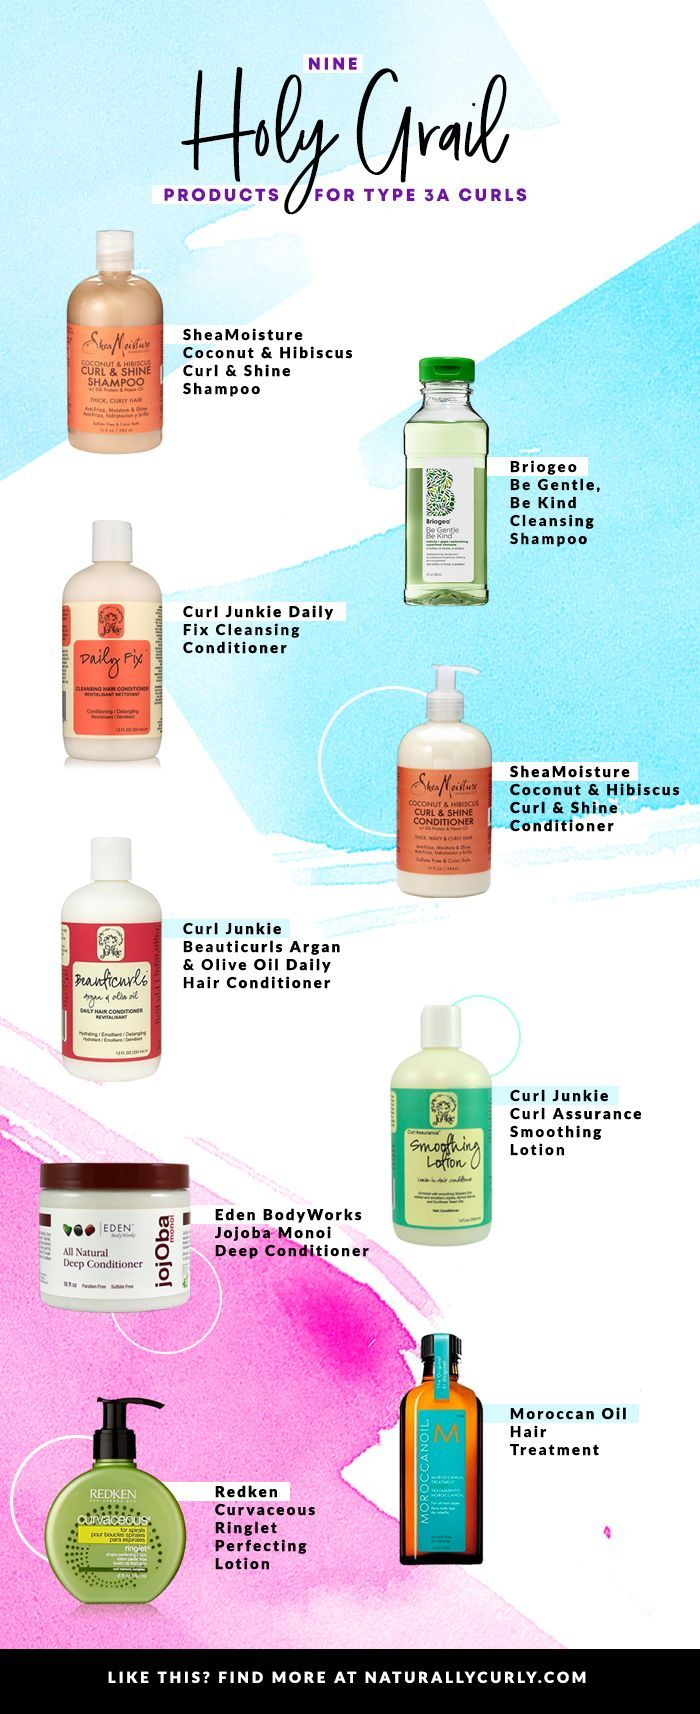 9 Holy Grail Hair Products For Type 3a Curls Curls Grail